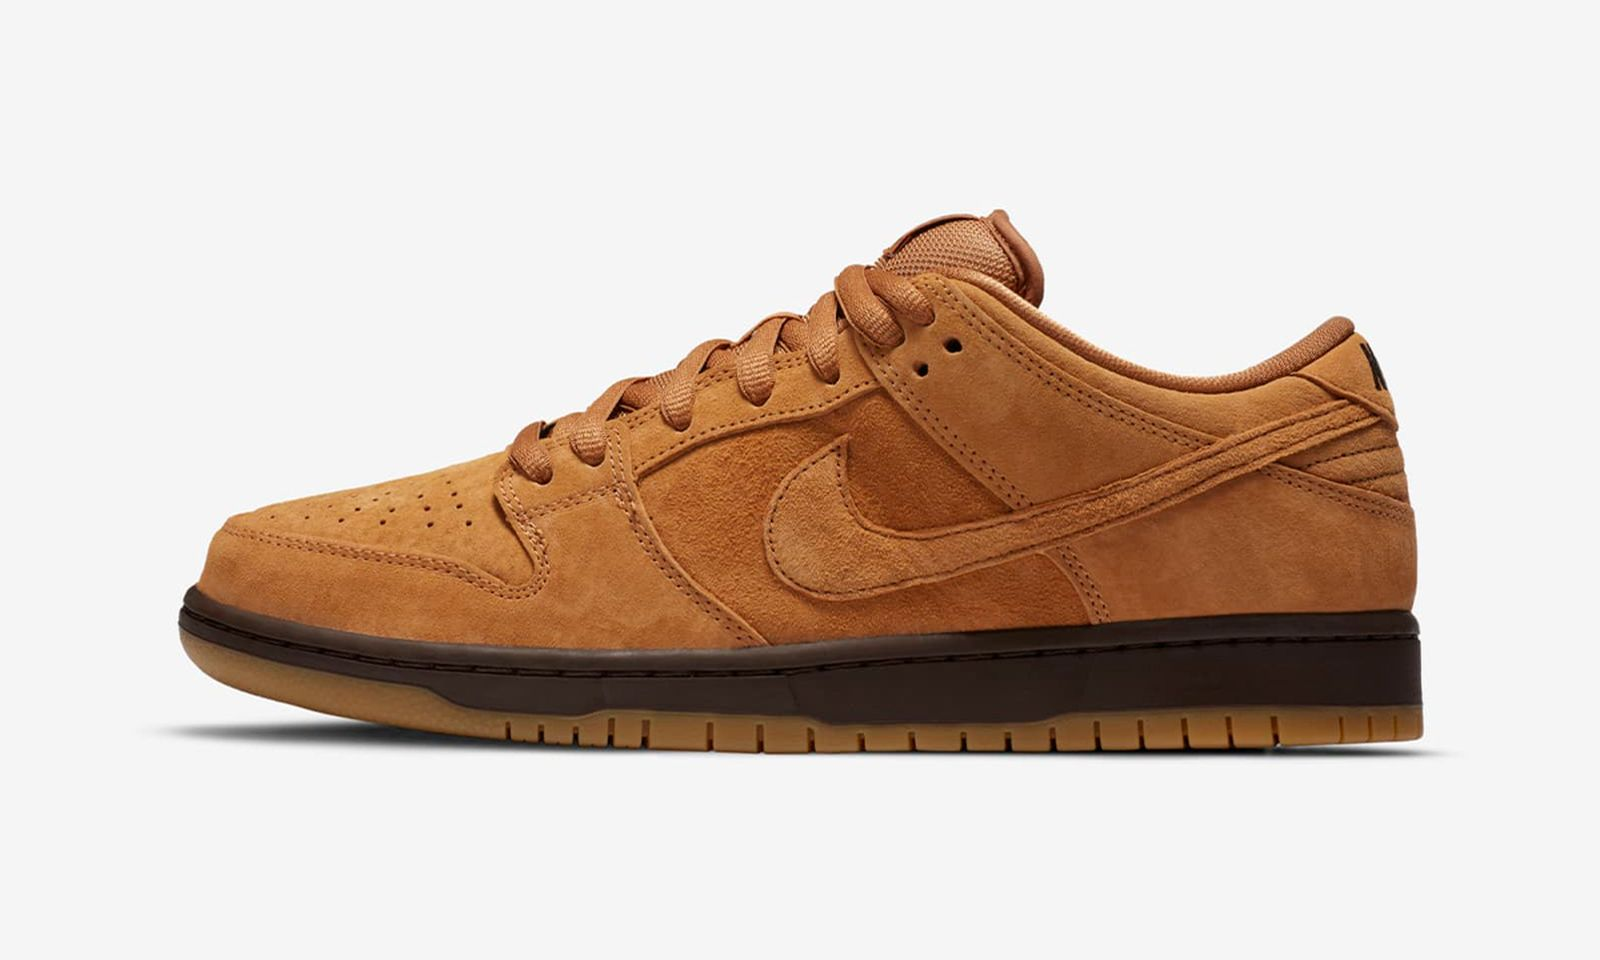 nike-sb-dunk-low-wheat-release-date-price-new-02